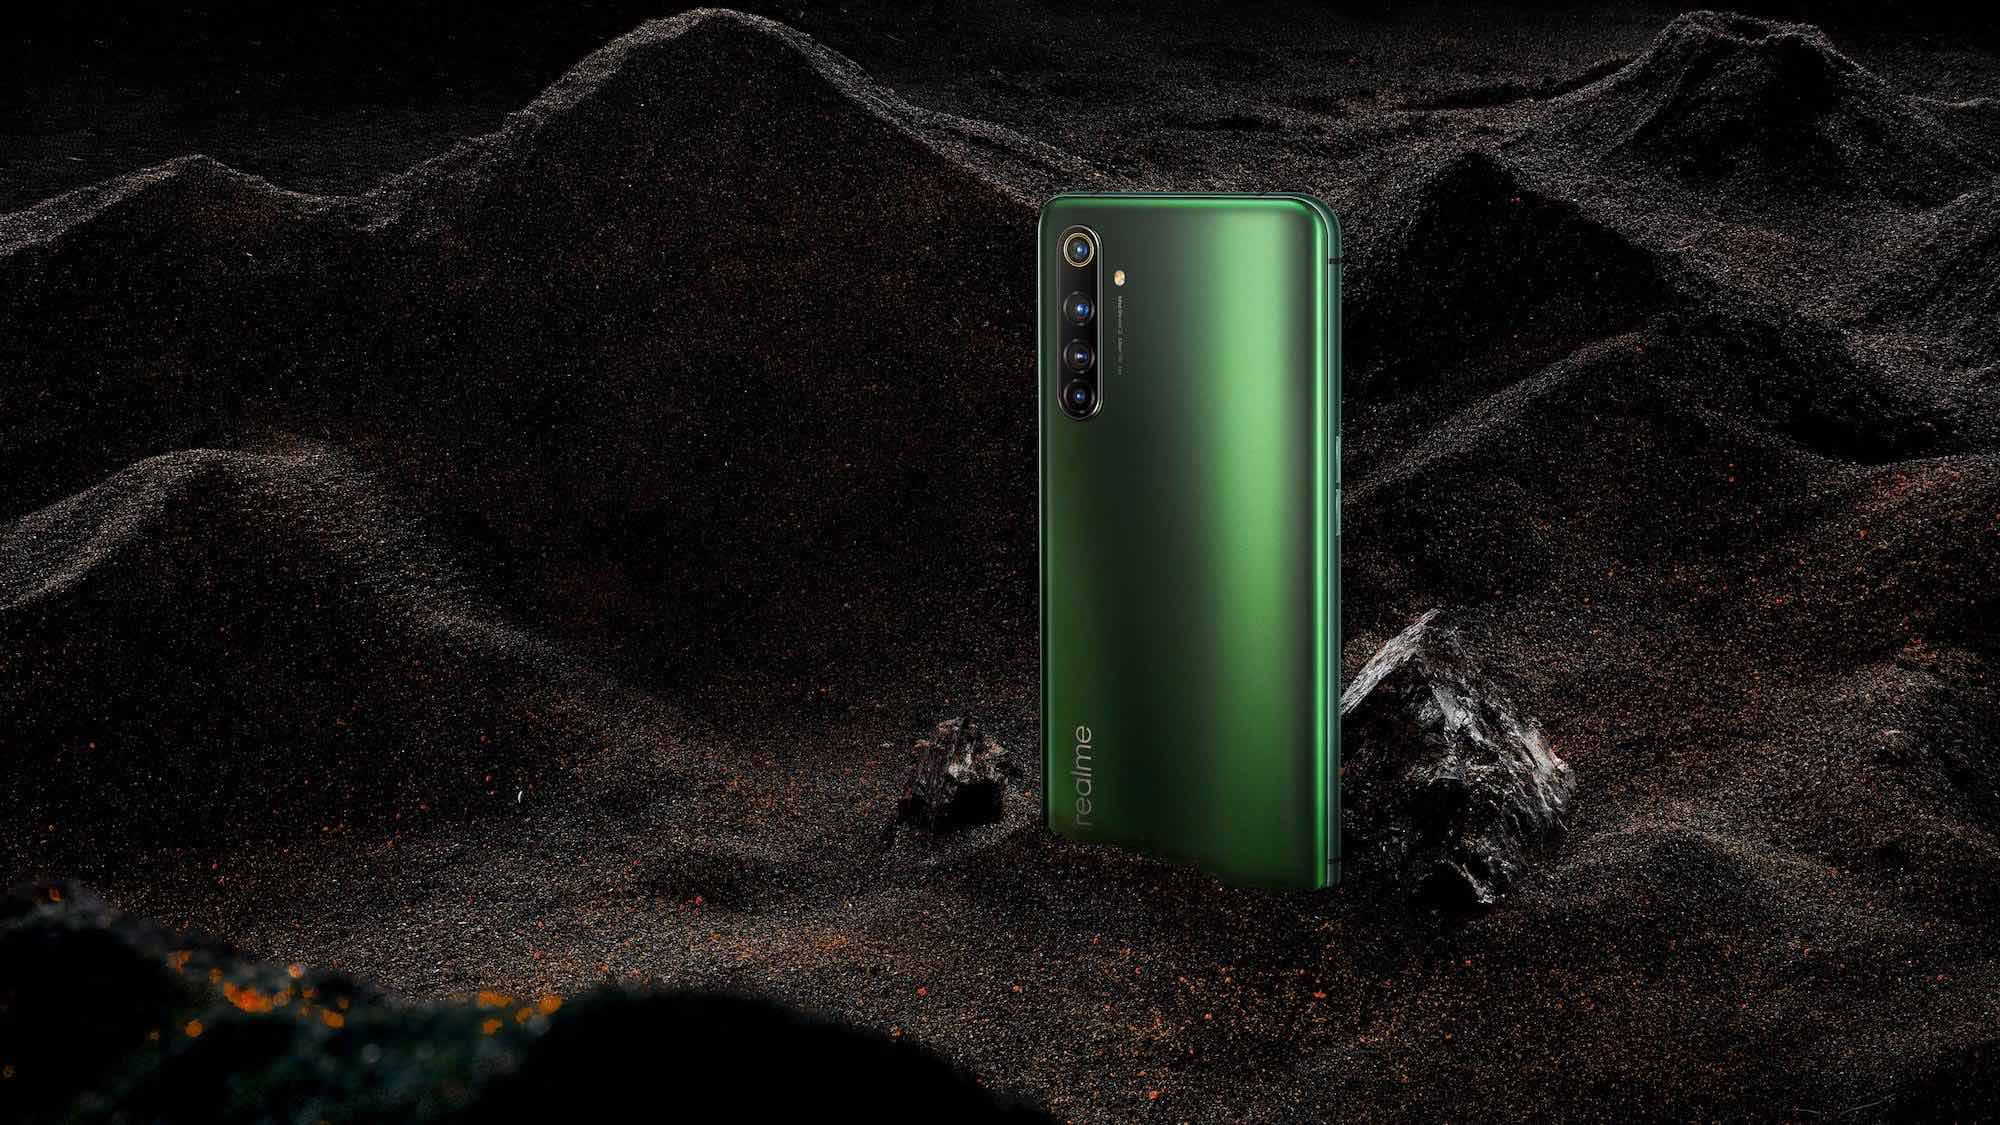 realme X50 Pro 5G Smartphone has a Snapdragon 865 5G processor that is as fast as 2.84 GHz